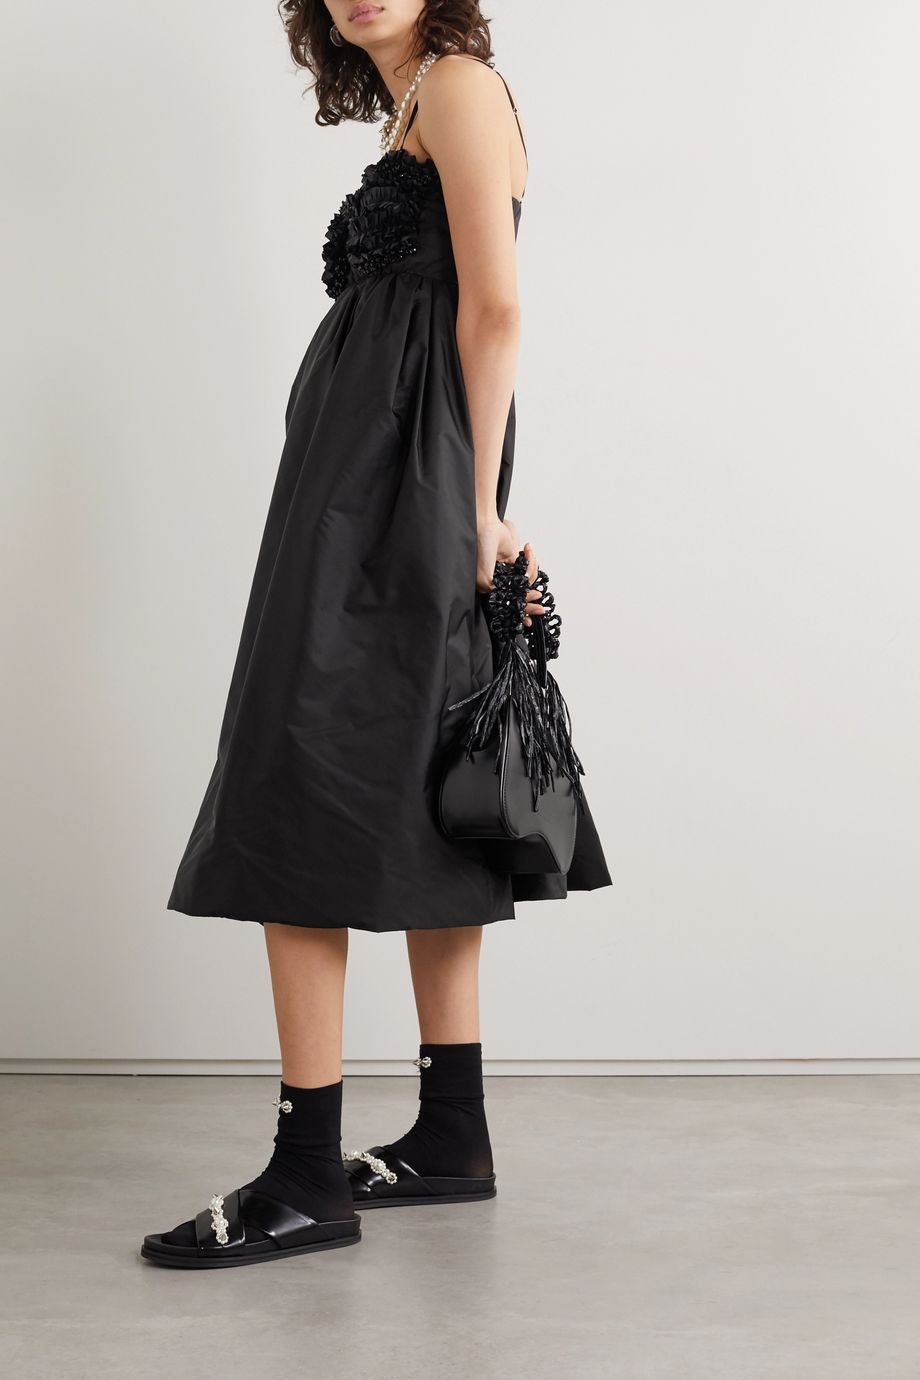 Moncler Genius + 4 Simone Rocha ruffled embellished shell down dress